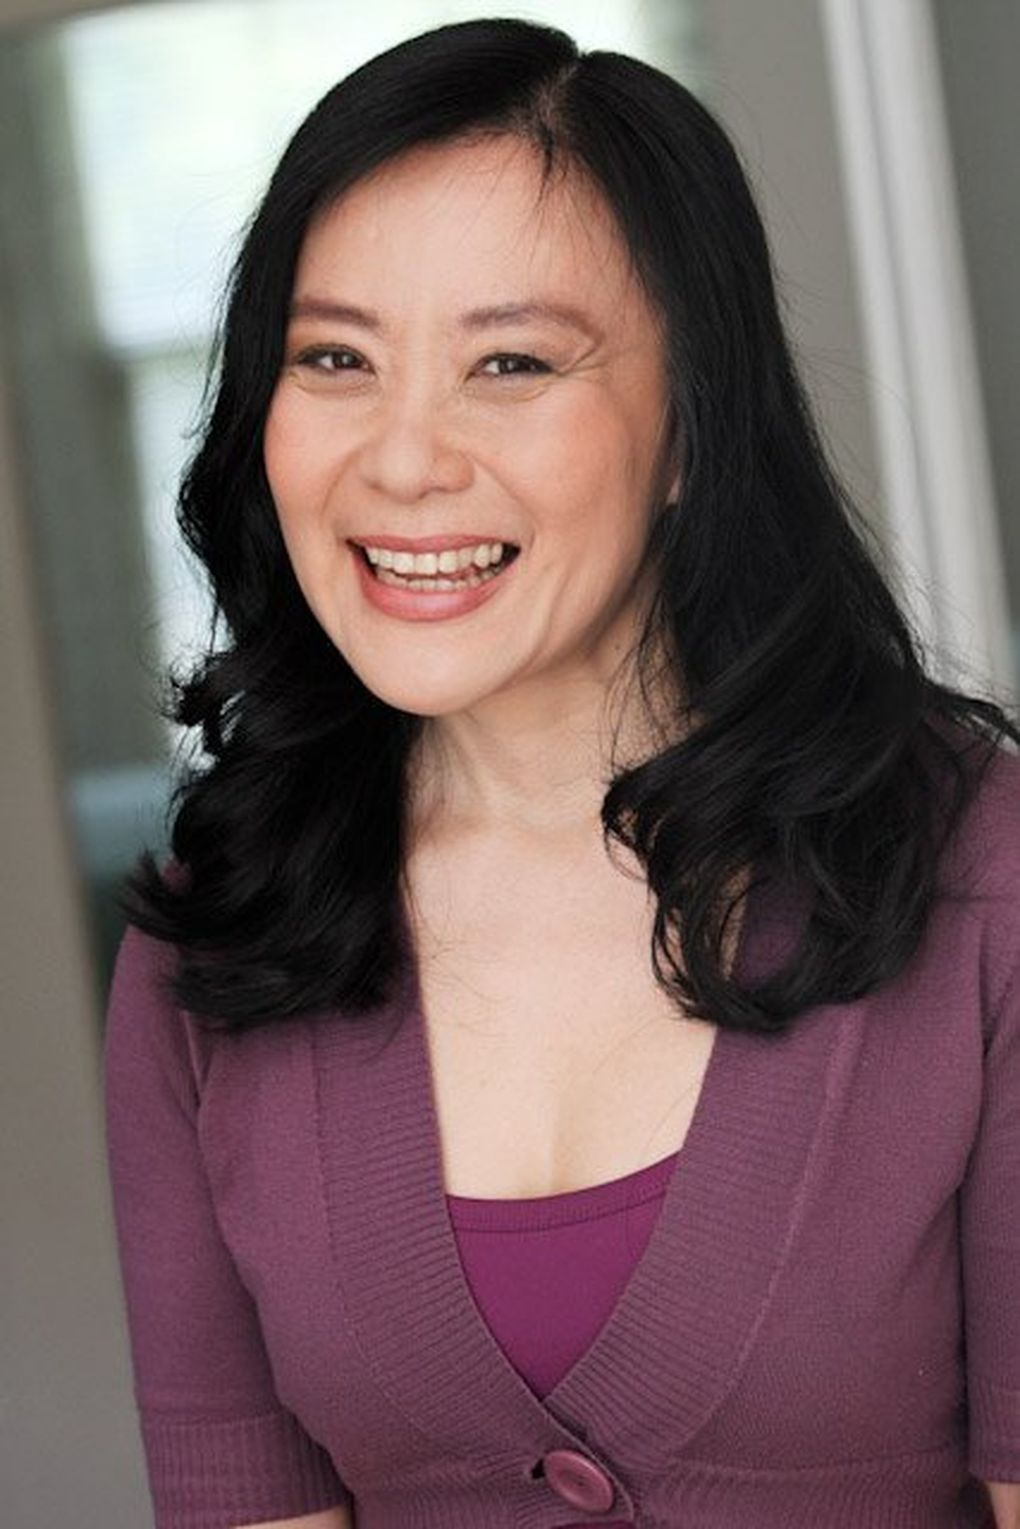 """Kathy Hsieh, co-director of SIS Productions and head of grants and cultural partnerships for Seattle's Office of Arts & Culture, says theater works best when """"people are treated as human beings, not just props for the director."""" (John Ulman)"""